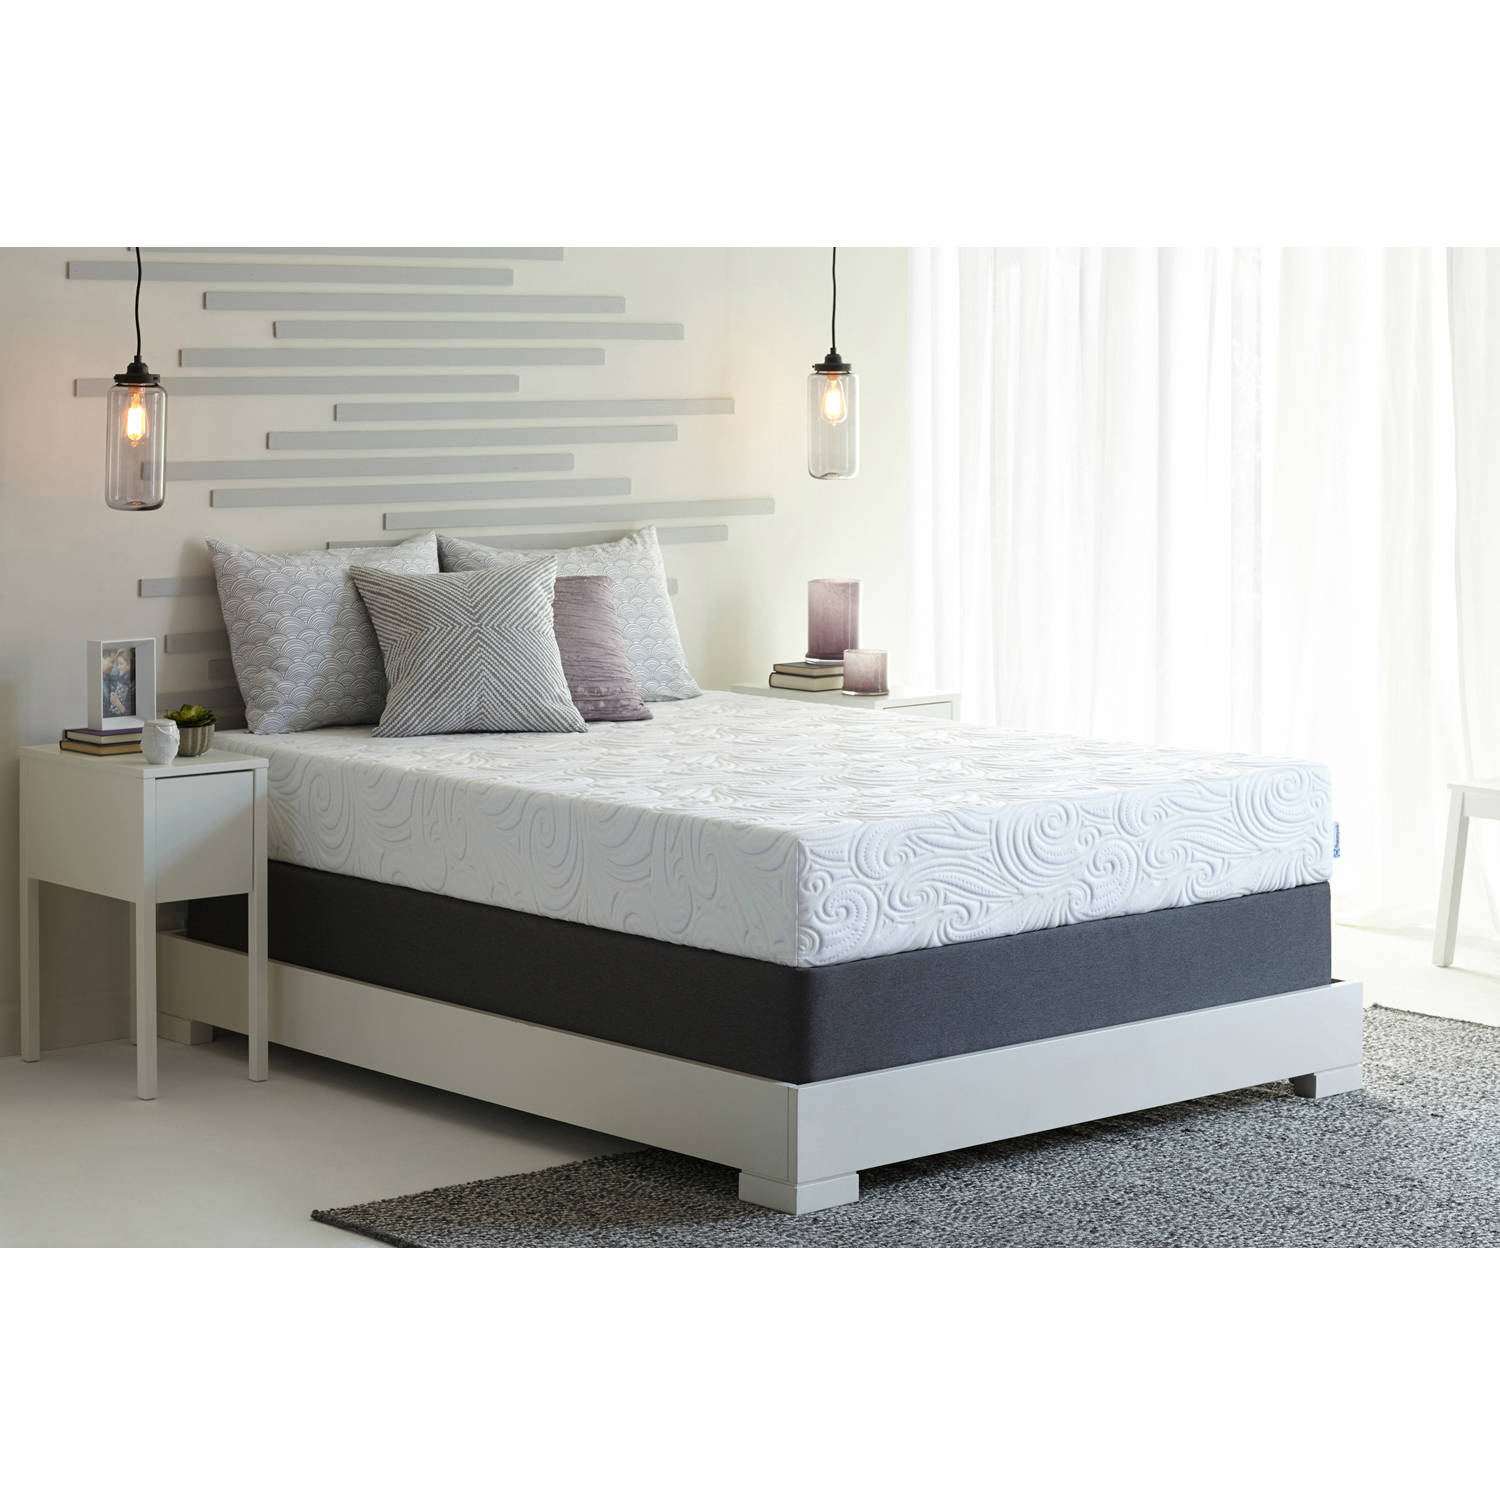 Sealy Posturepedic Optimum Truharmony Mattress Walmart